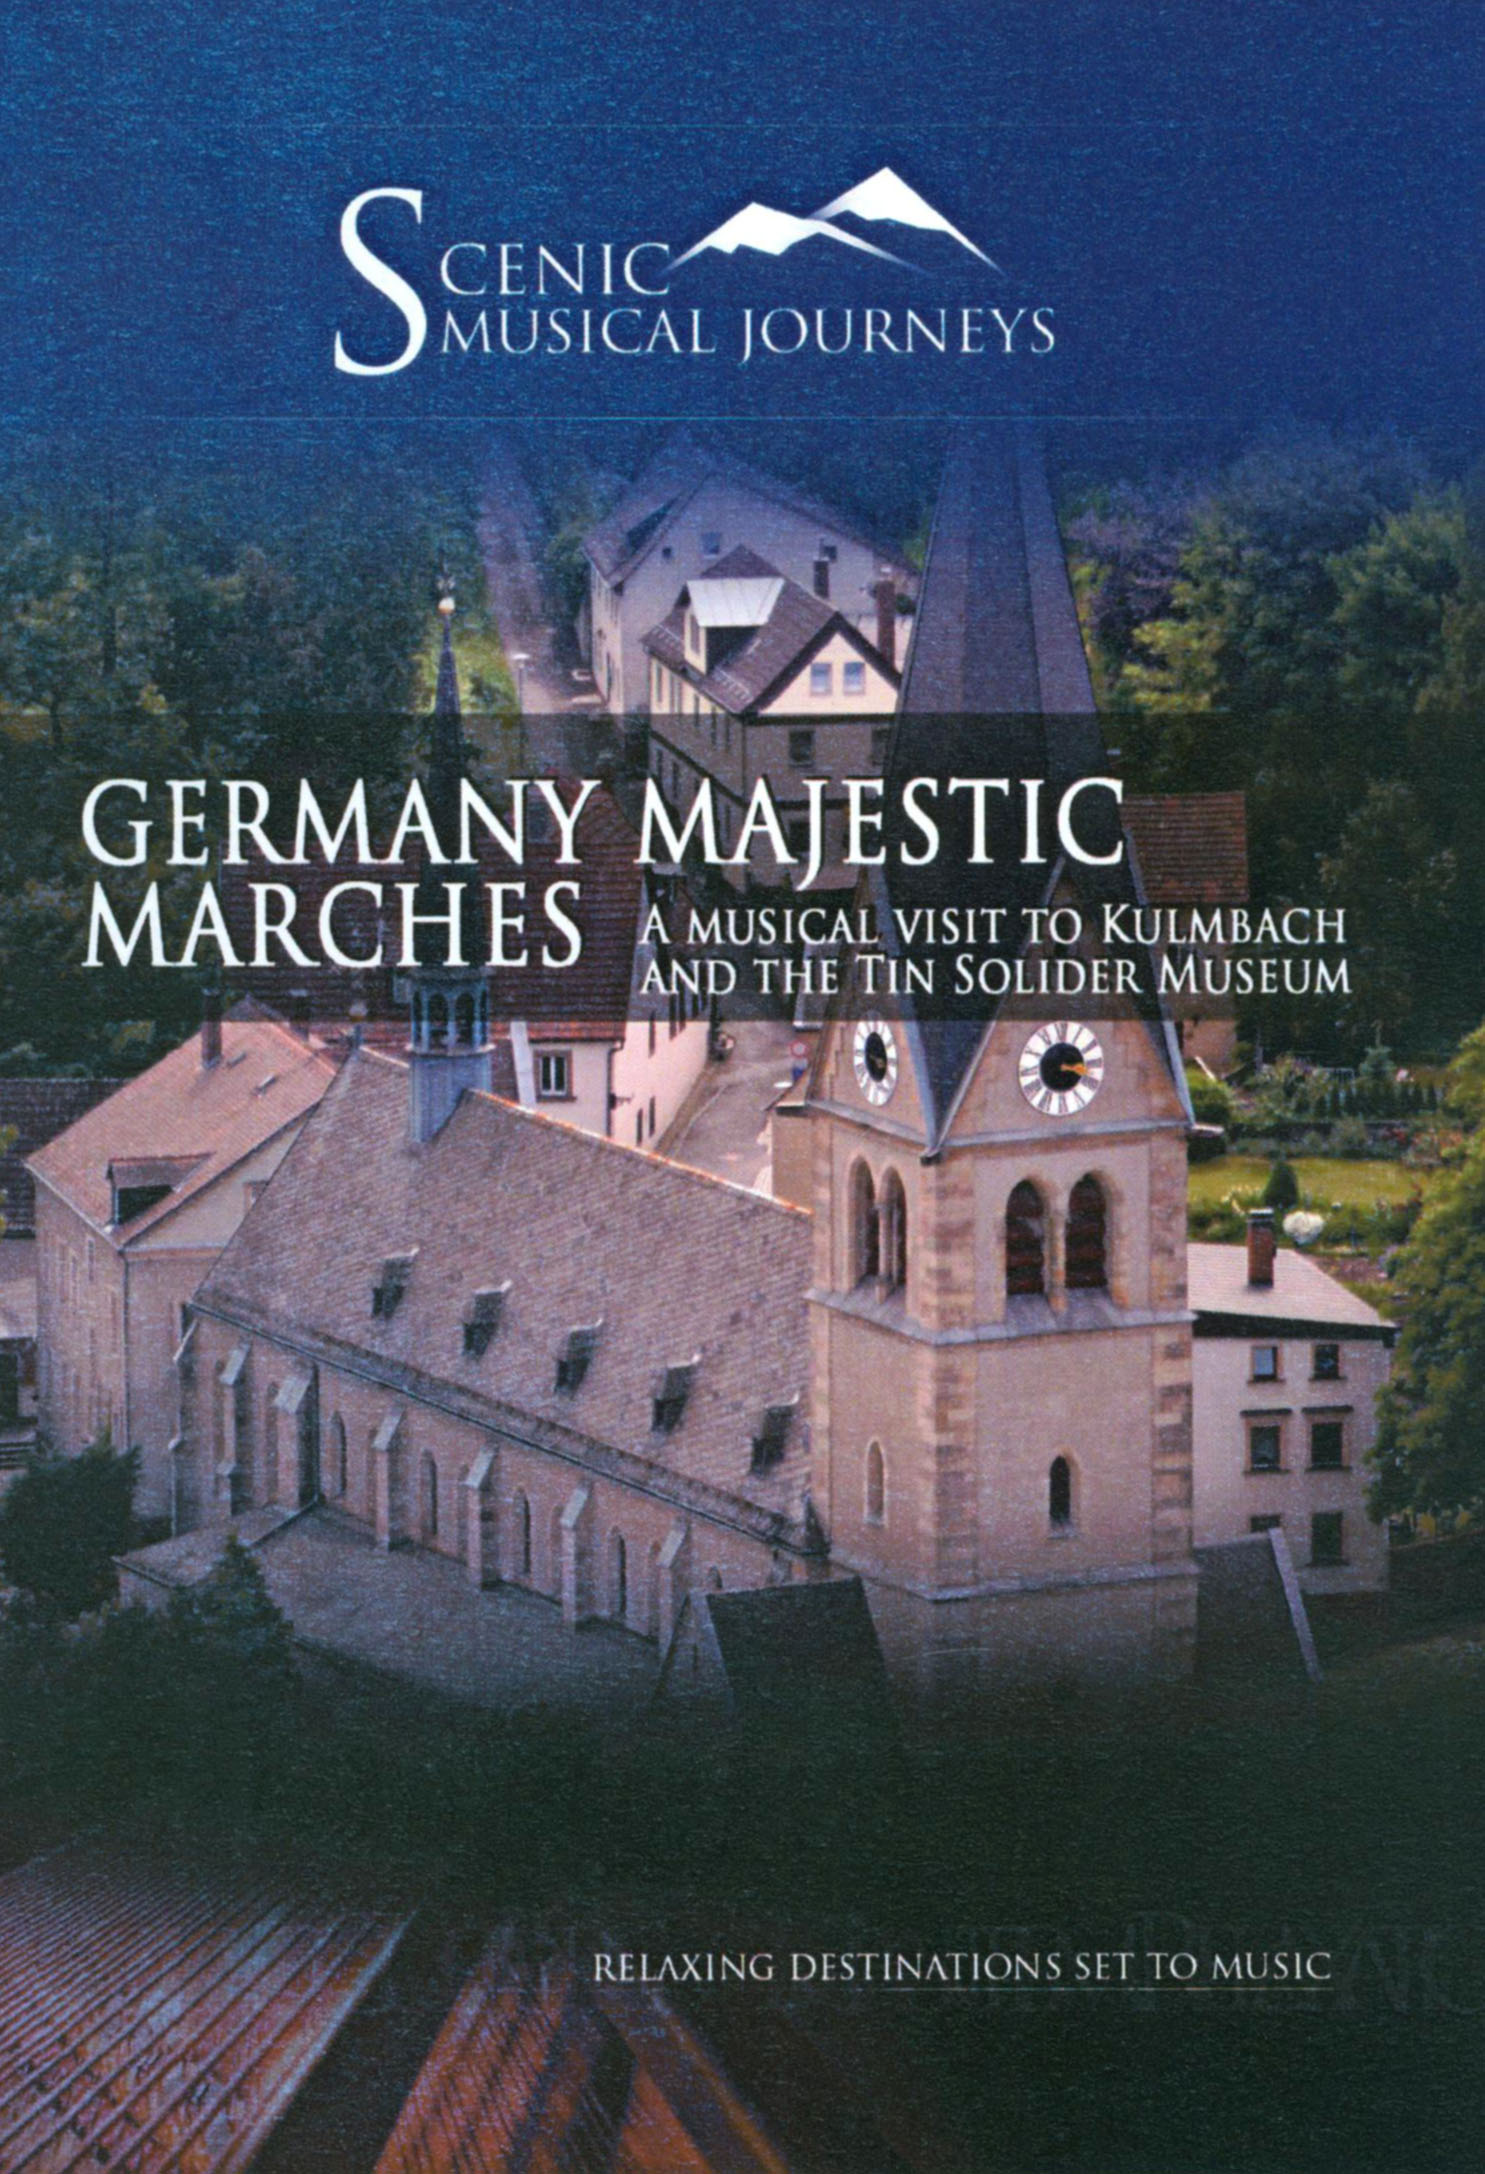 Scenic Musical Journeys: Germany Majestic Marches - A Musical Visit to Kulmbach and the Tin Solider